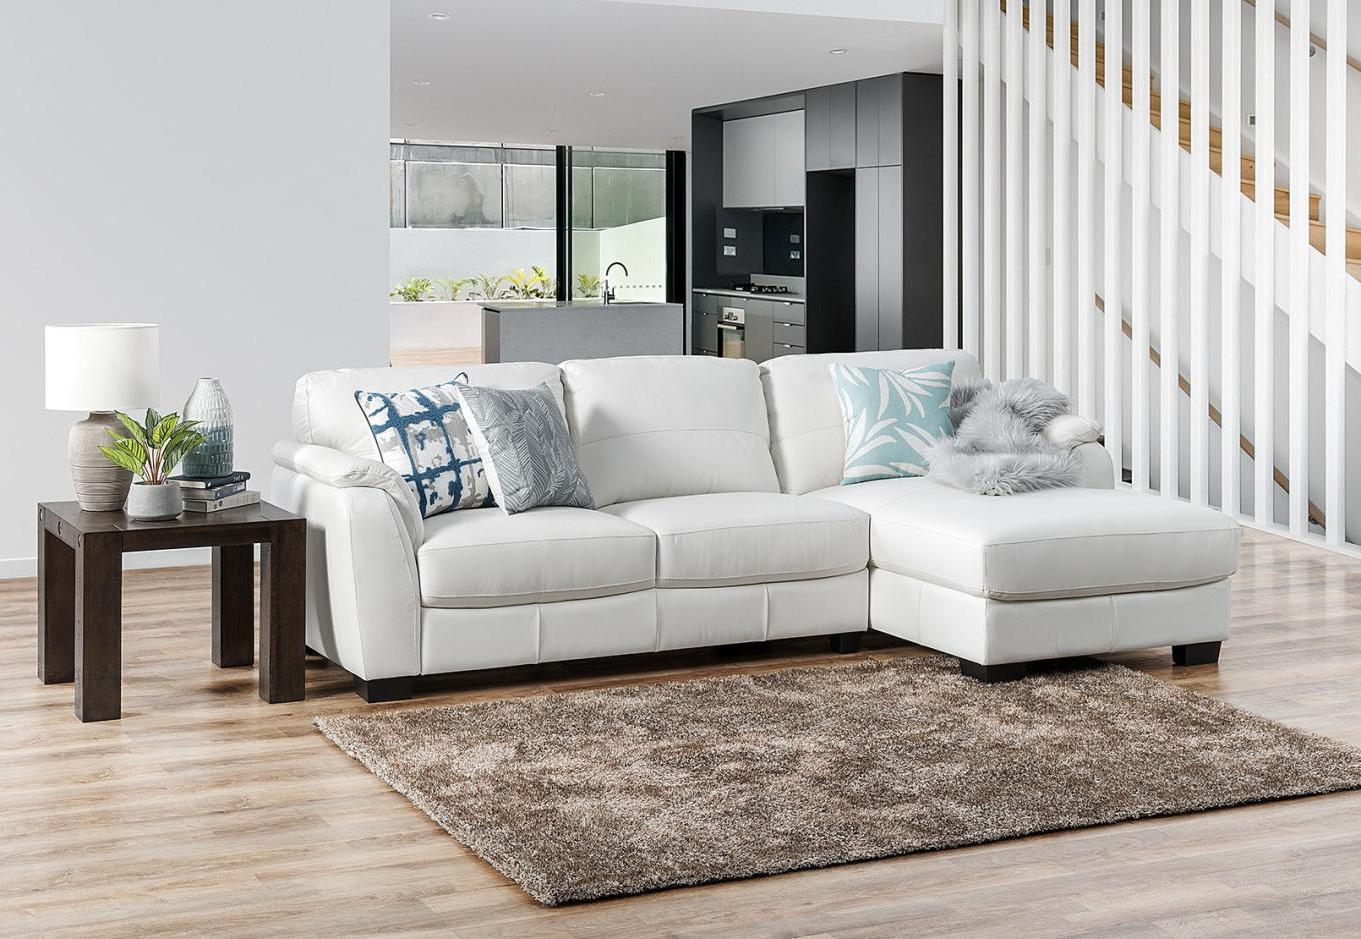 Marissa Leather 3 Seater Chaise White – Sofas, Lounges & Couches Regarding Widely Used Marissa Sofa Chairs (View 10 of 20)